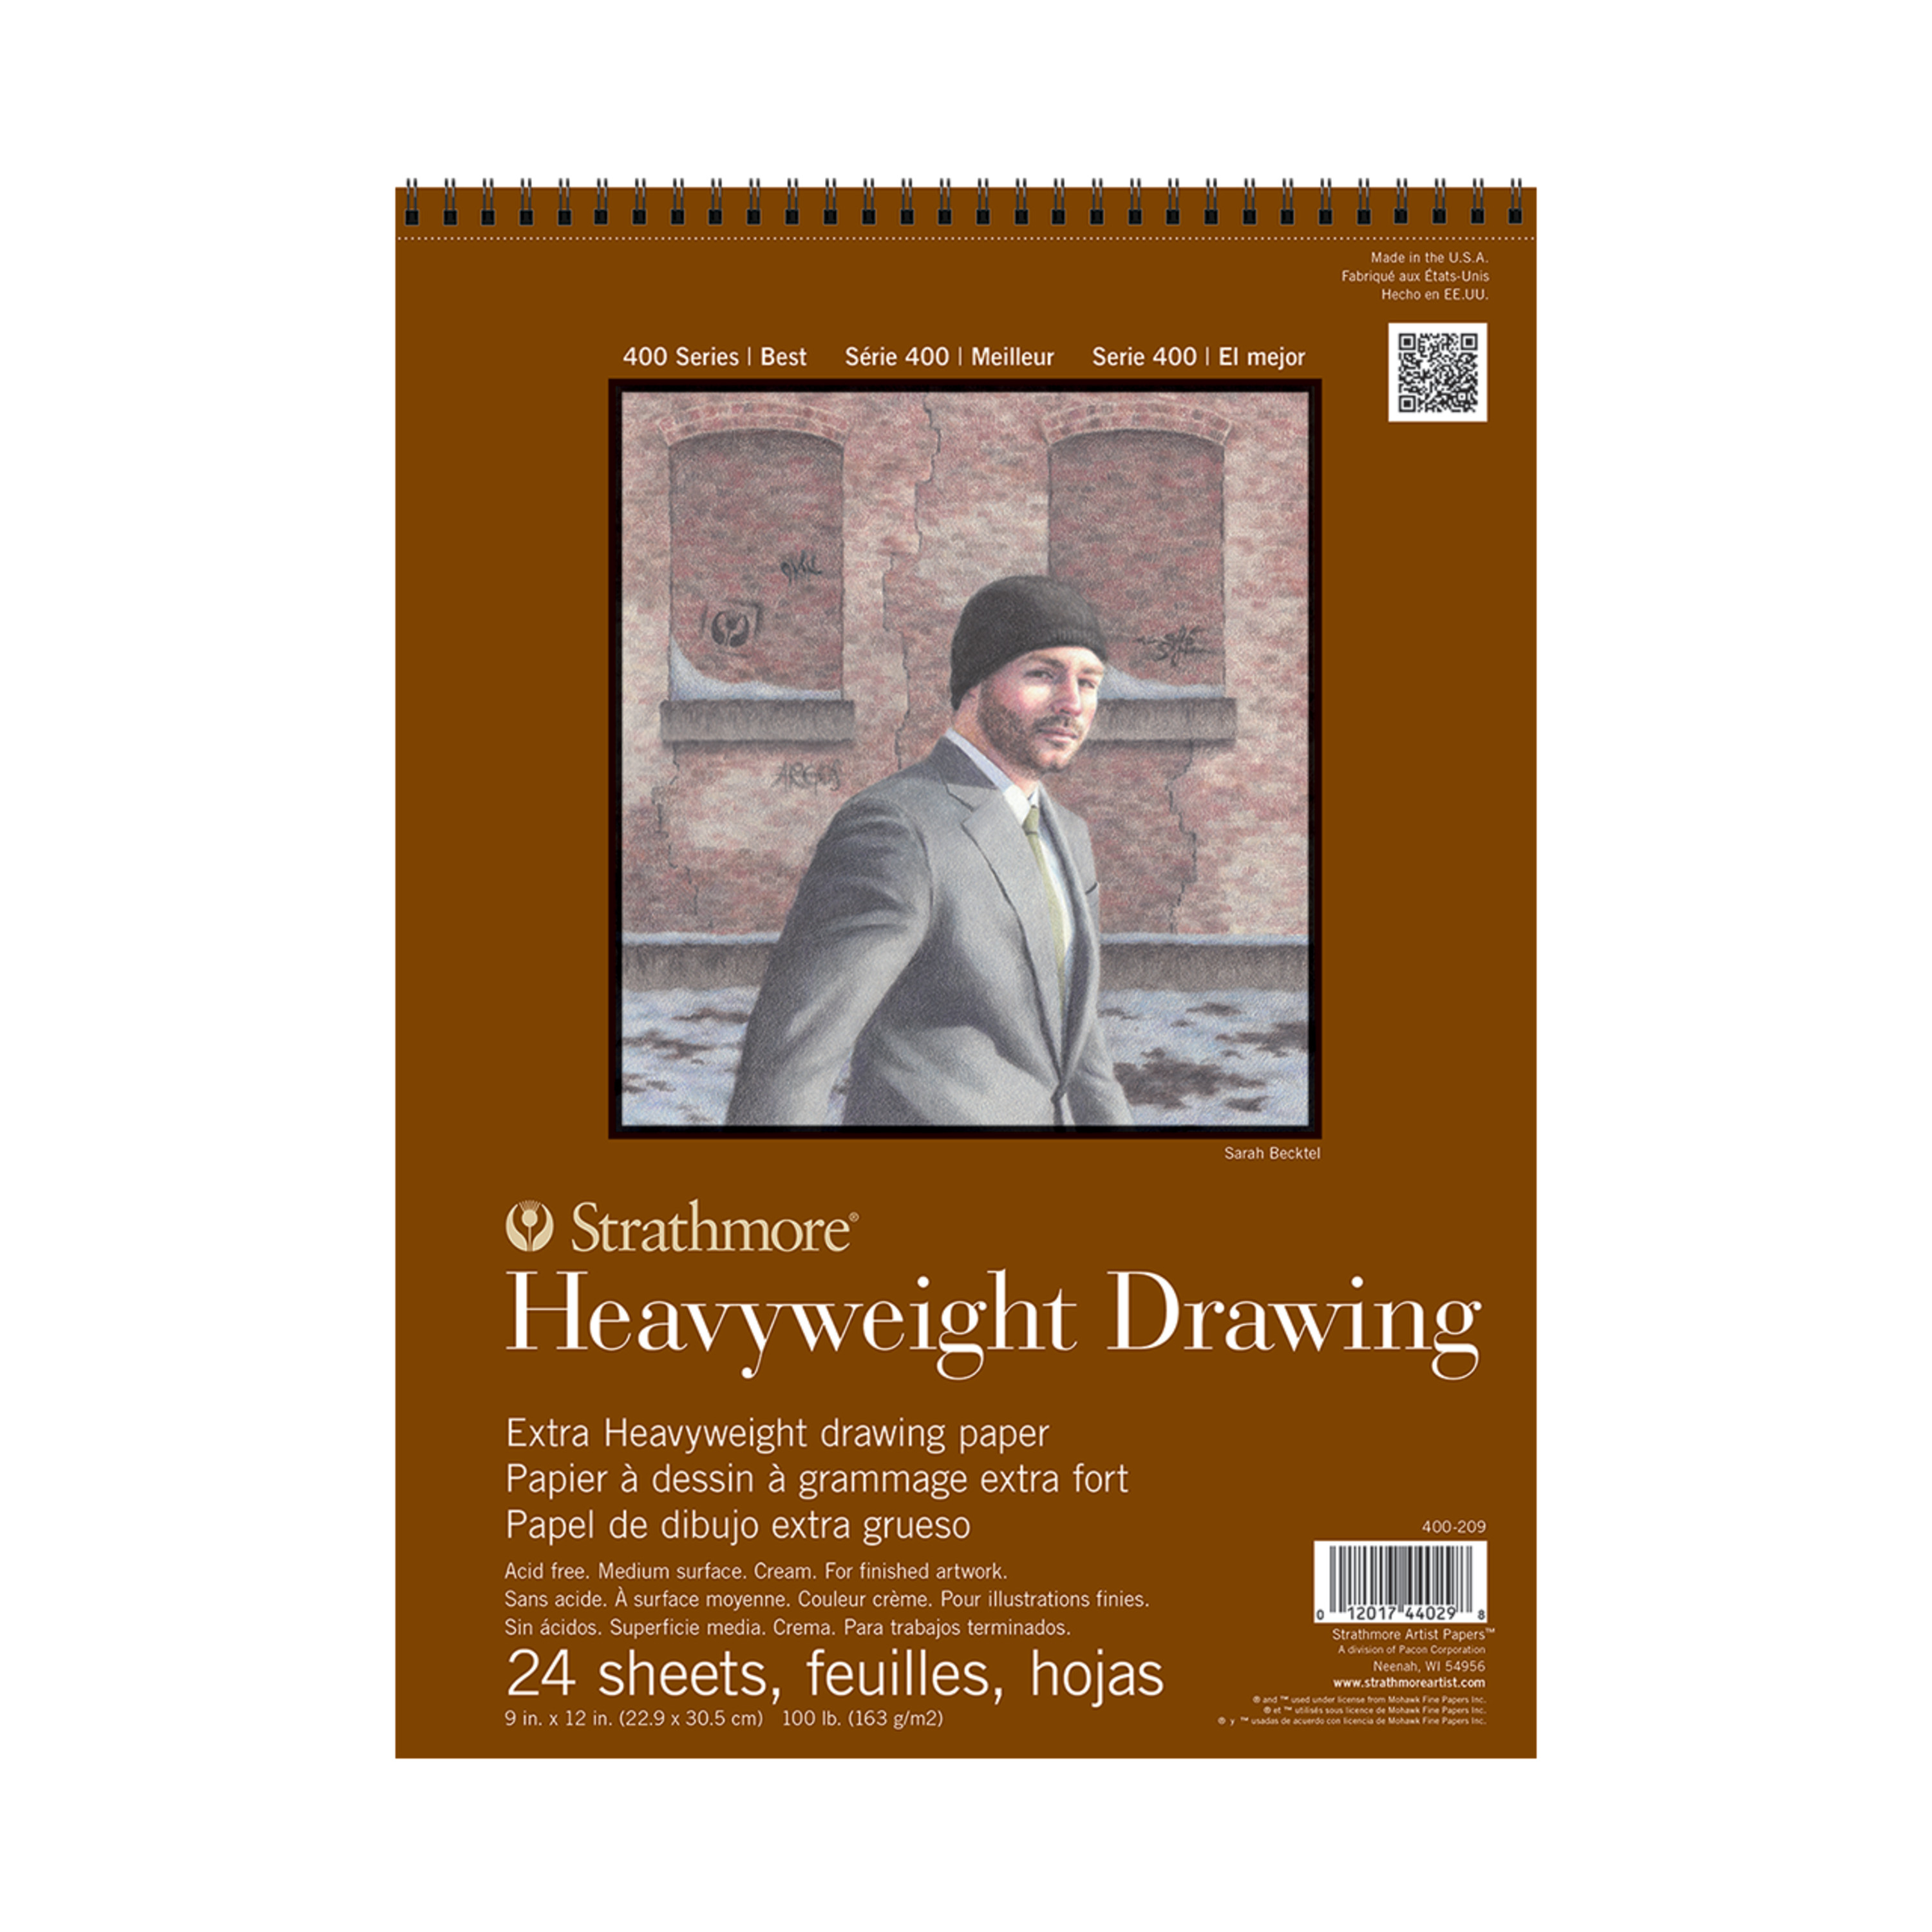 Strathmore Drawing Paper Pad, 400 Series, 24 Sheets, 9in x 12in